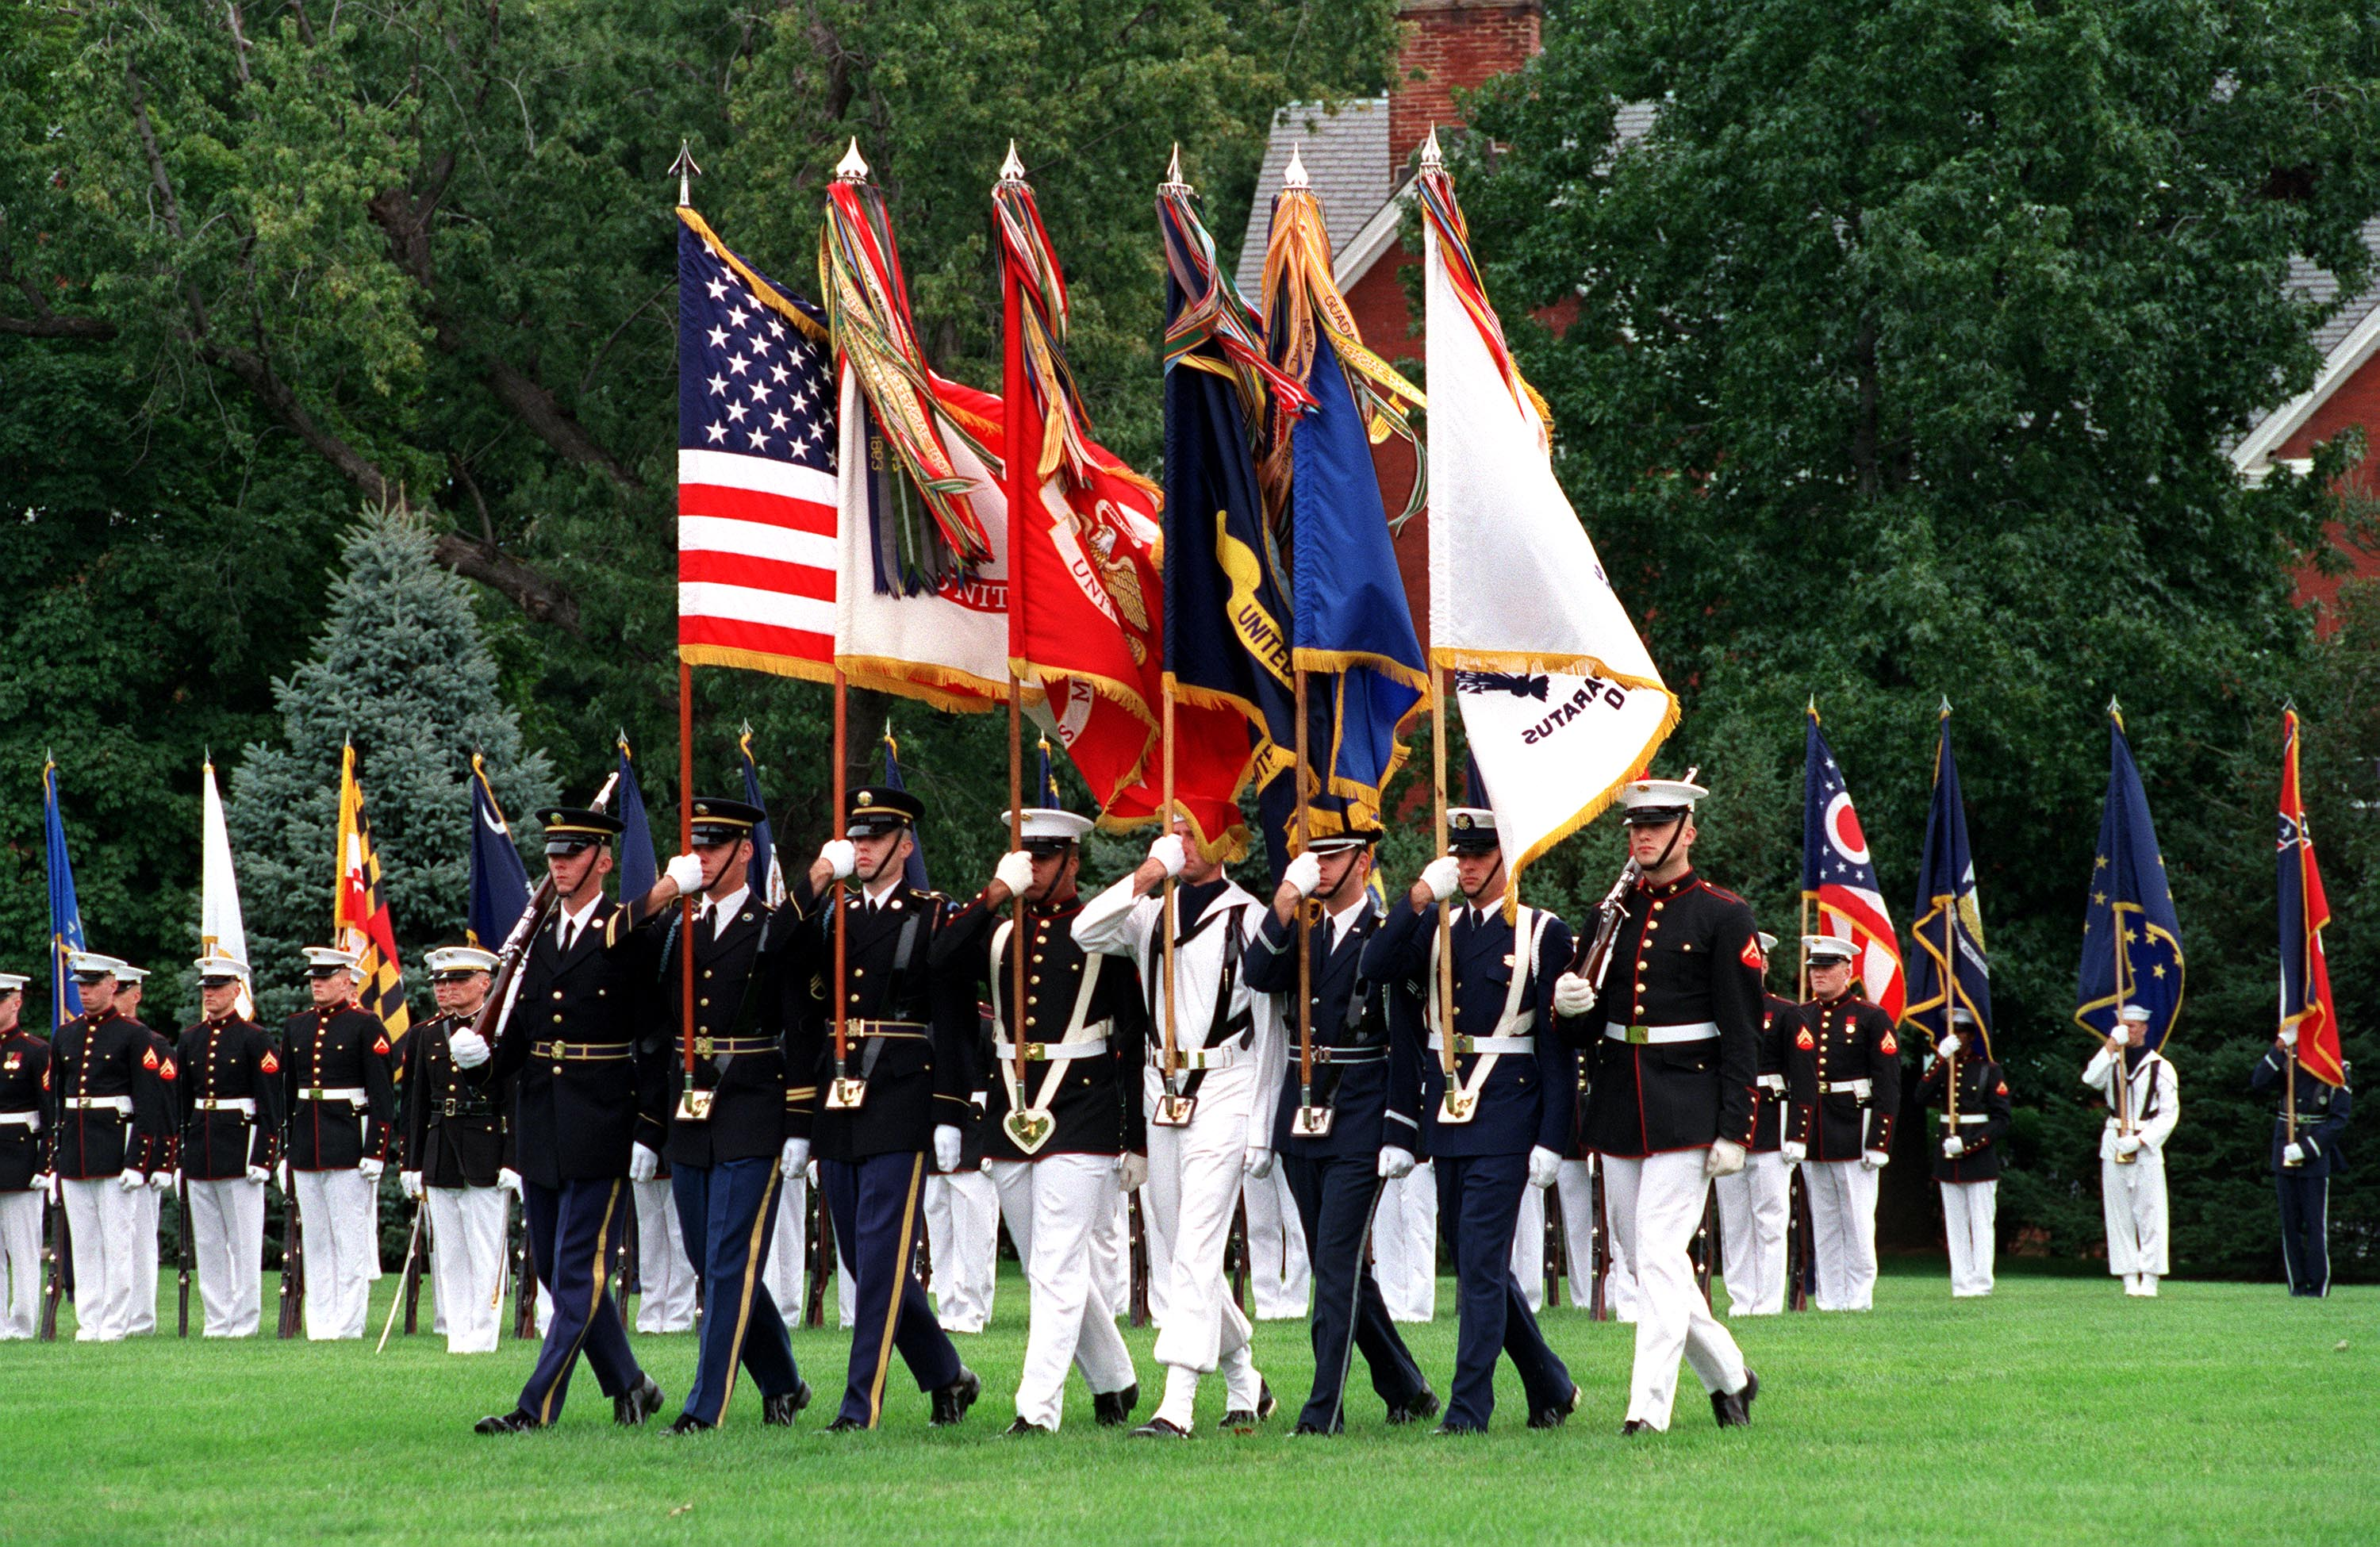 The Joint Service Color Guard